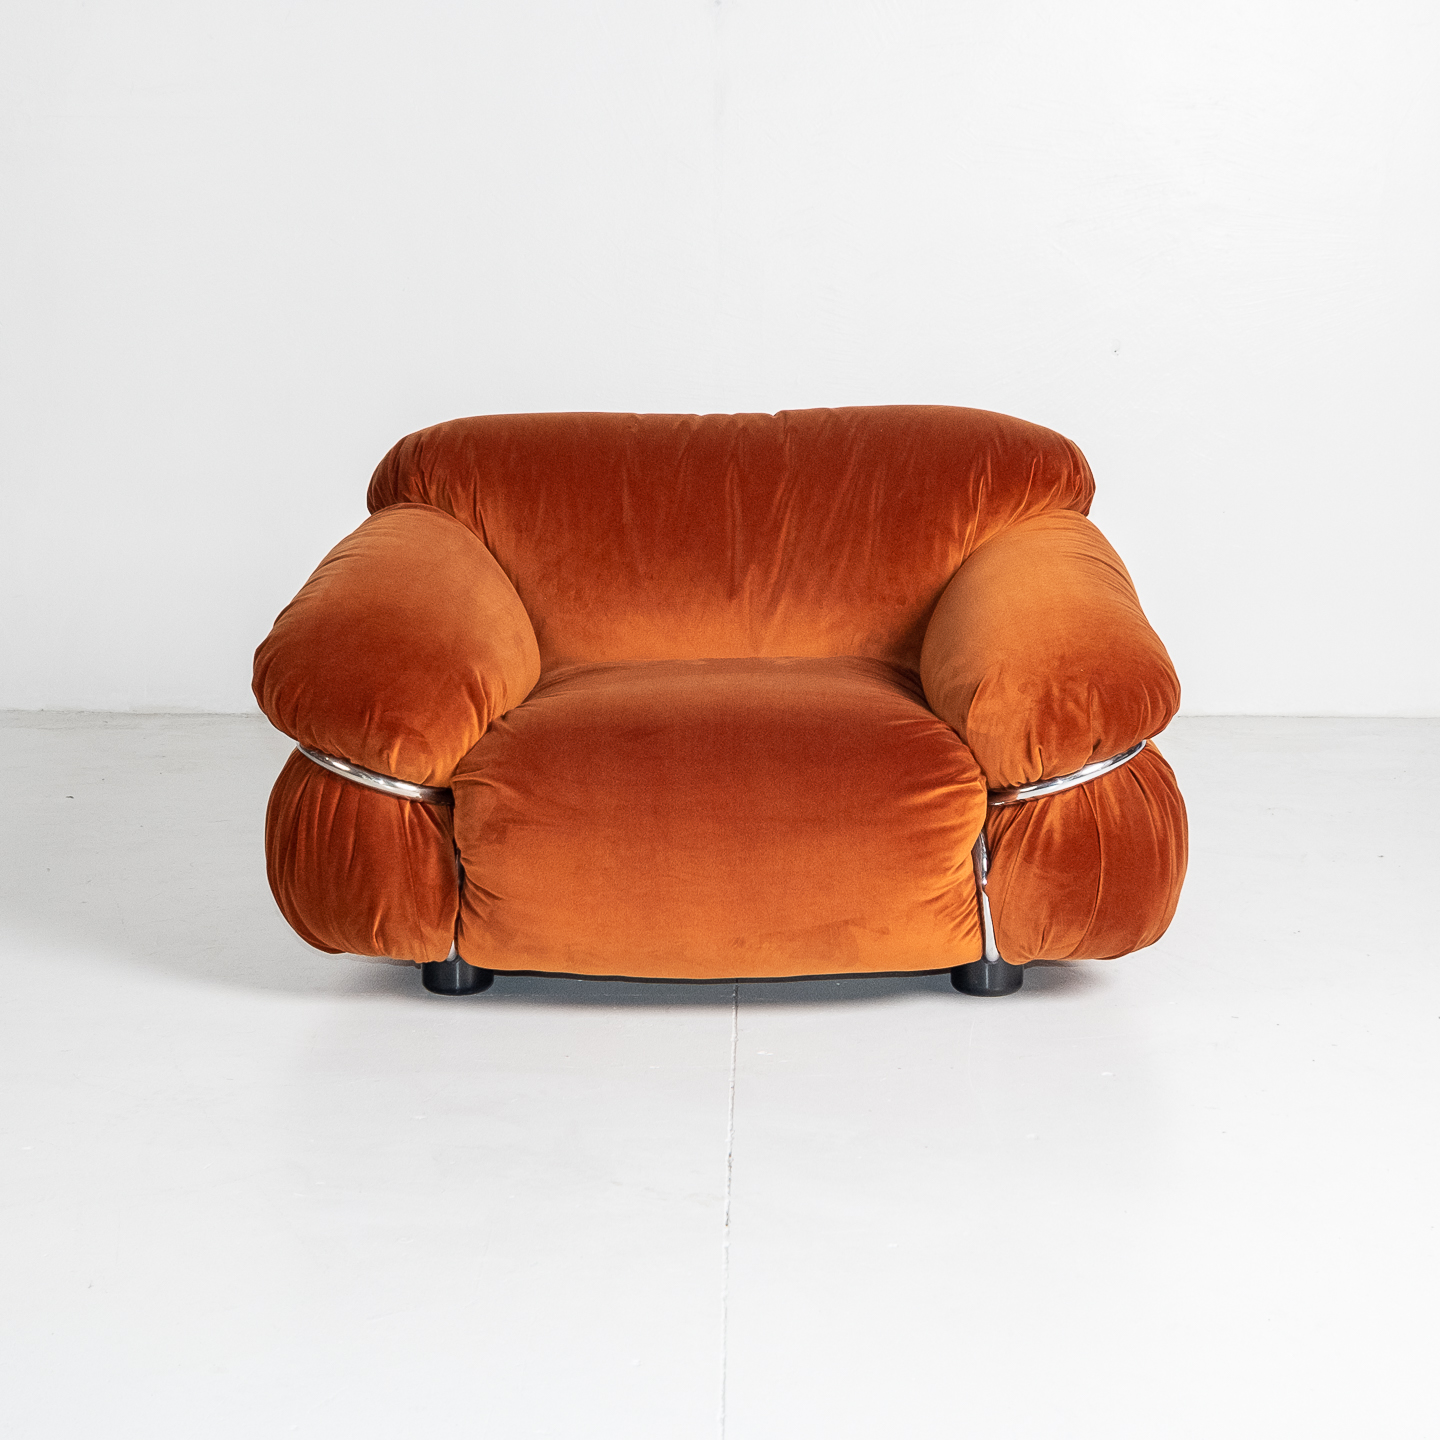 Model 595 Sesann Armchair By Gianfranco Frattini For Cassina, 1970s, Italy 08